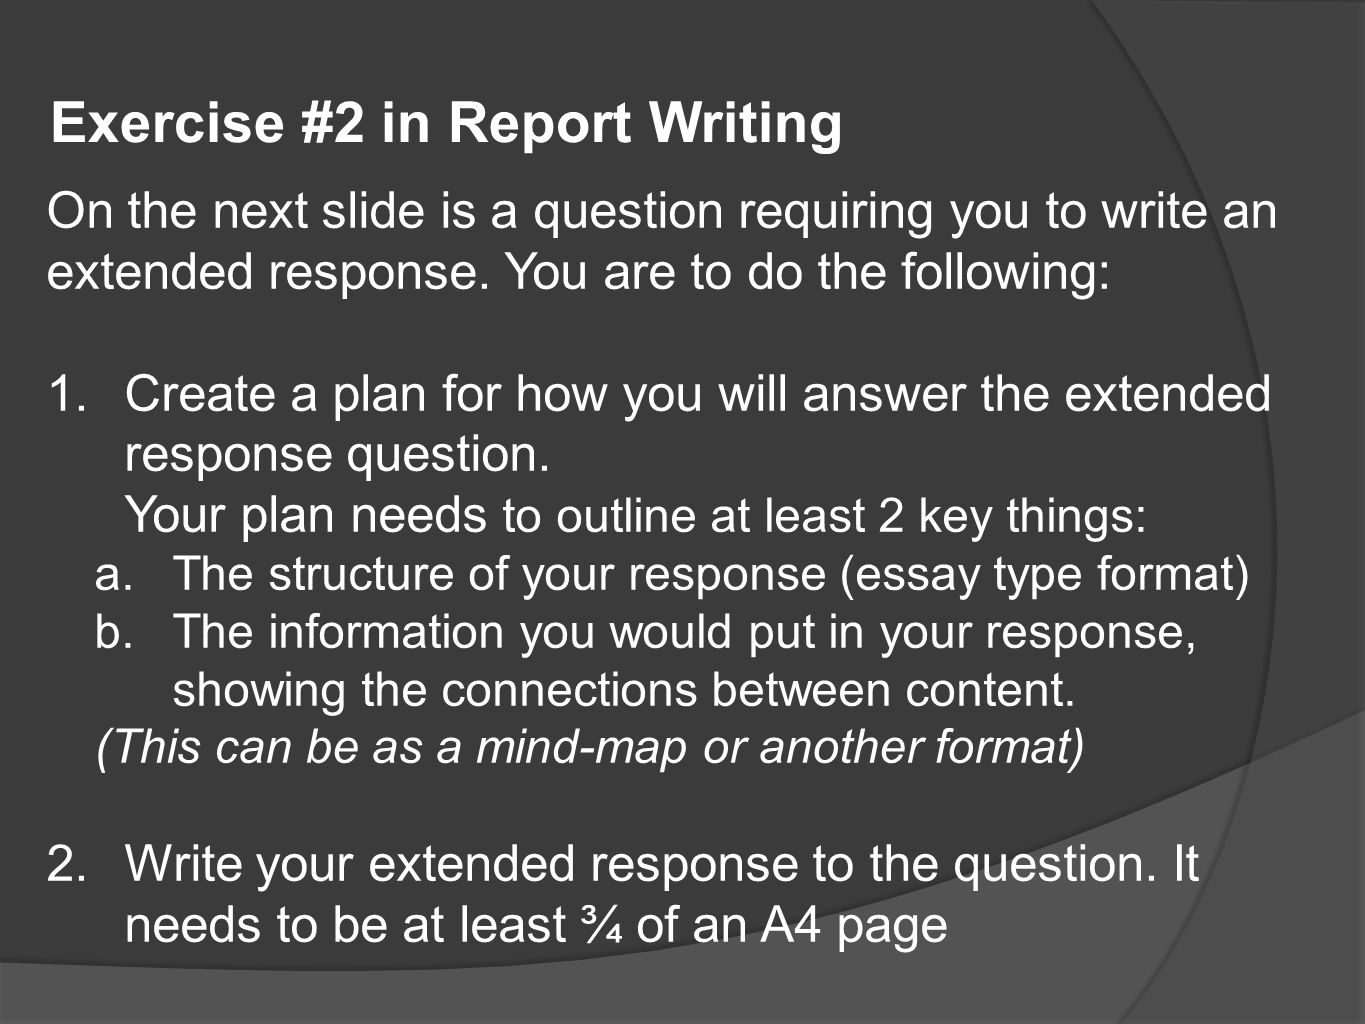 Exercise #2 in Report Writing